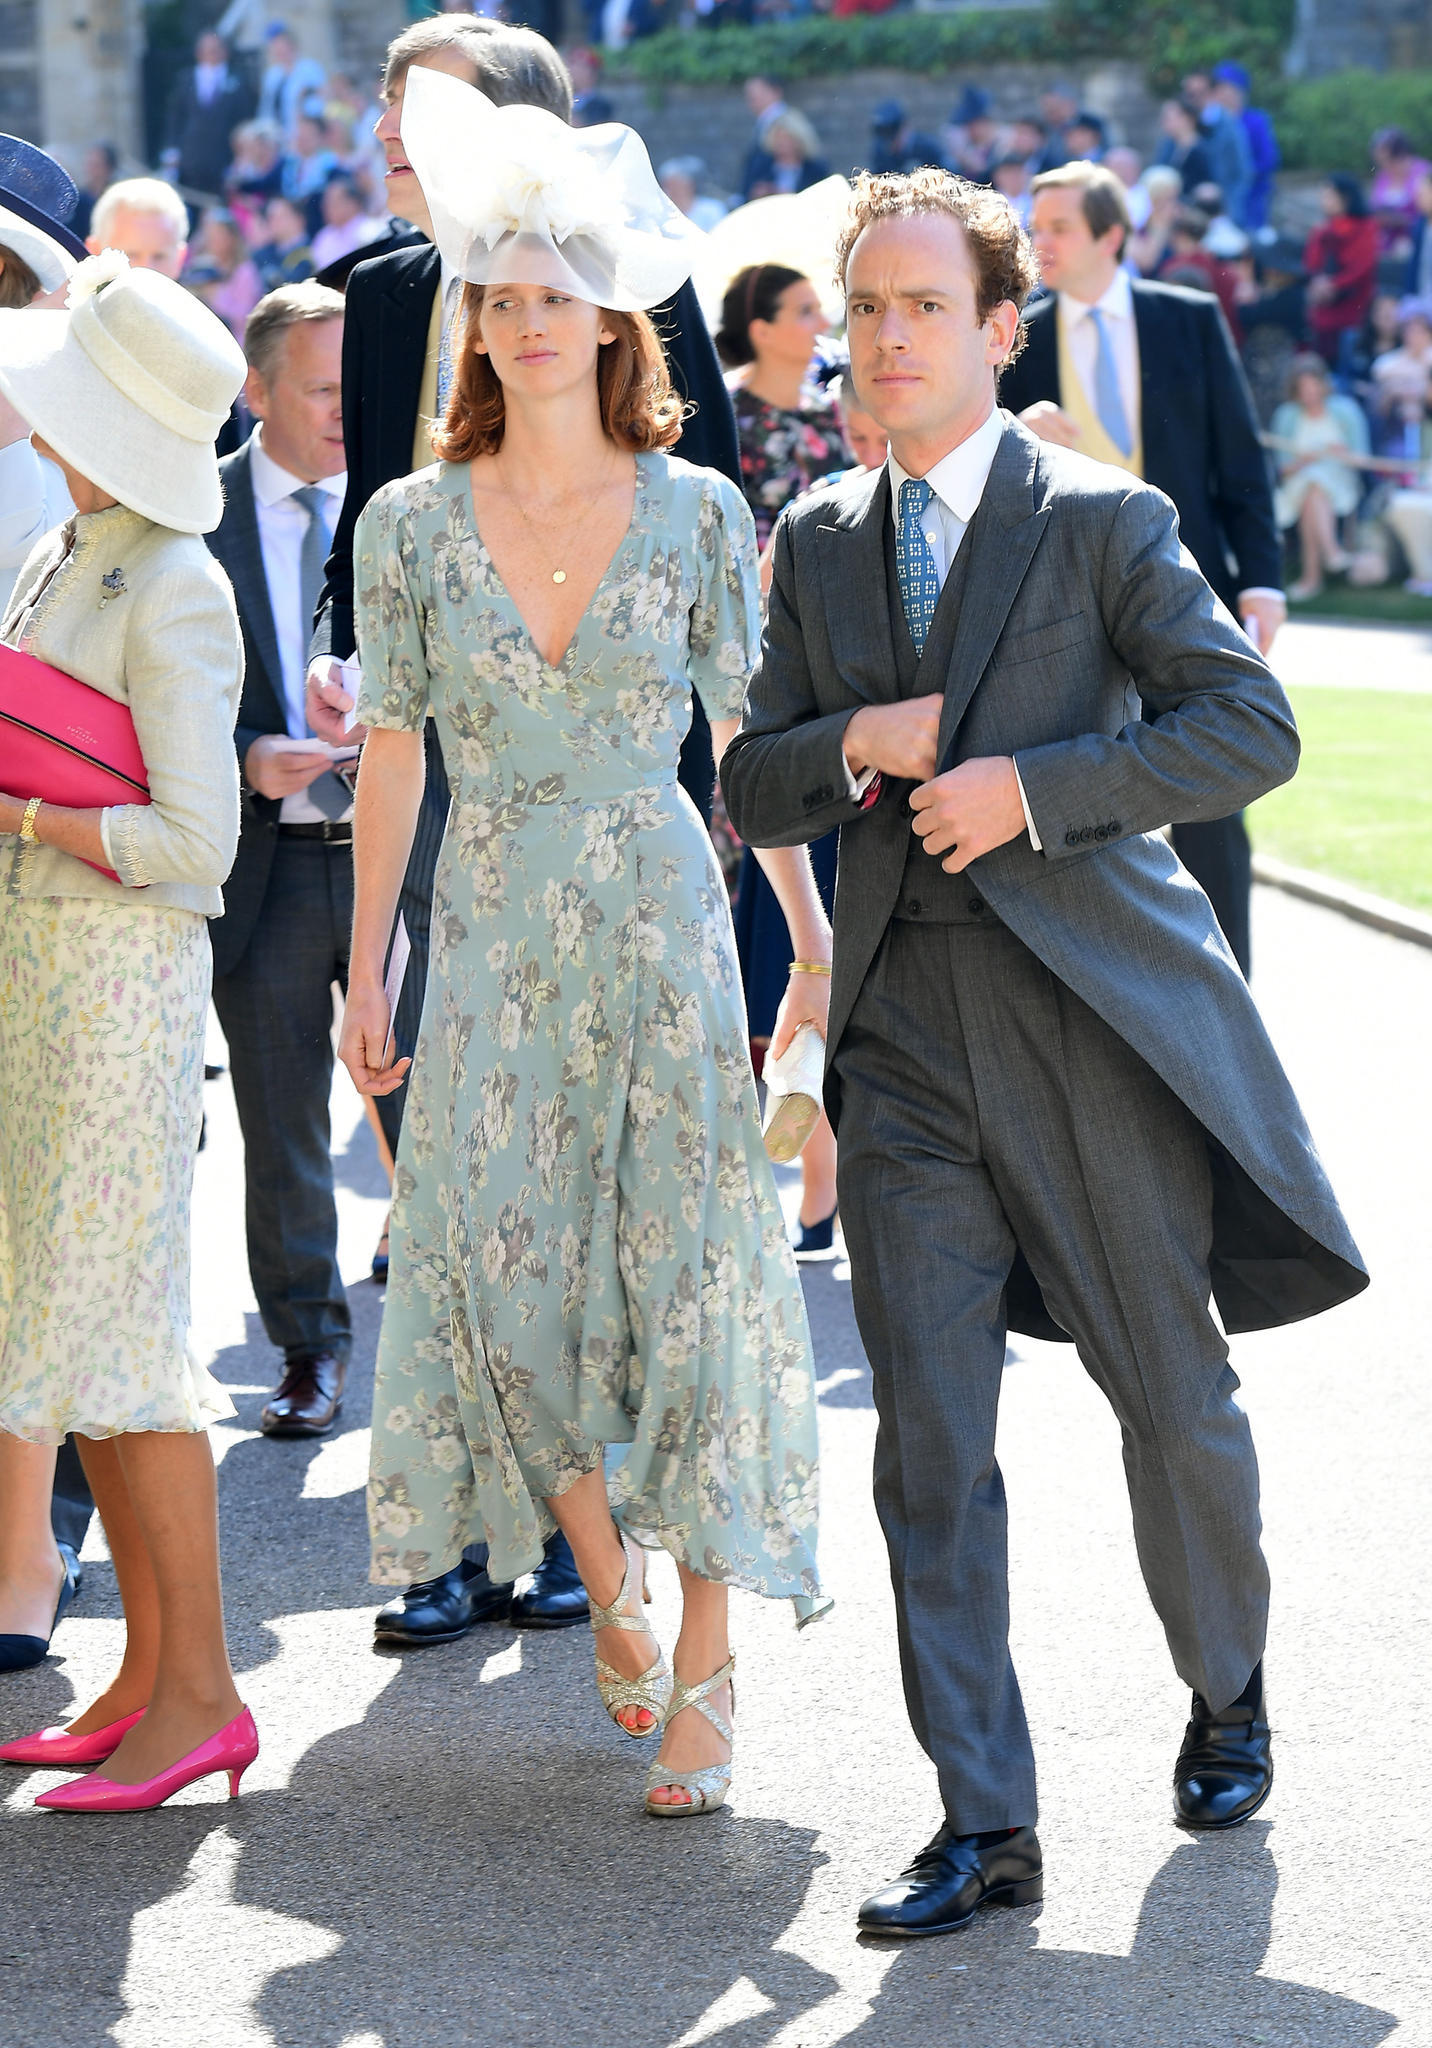 Tom Inskip und Lara Inskip bei der Ankunft zur Hochzeit von Prinz Harry und Meghan Markle in der St. Georges Chapel in Windsor